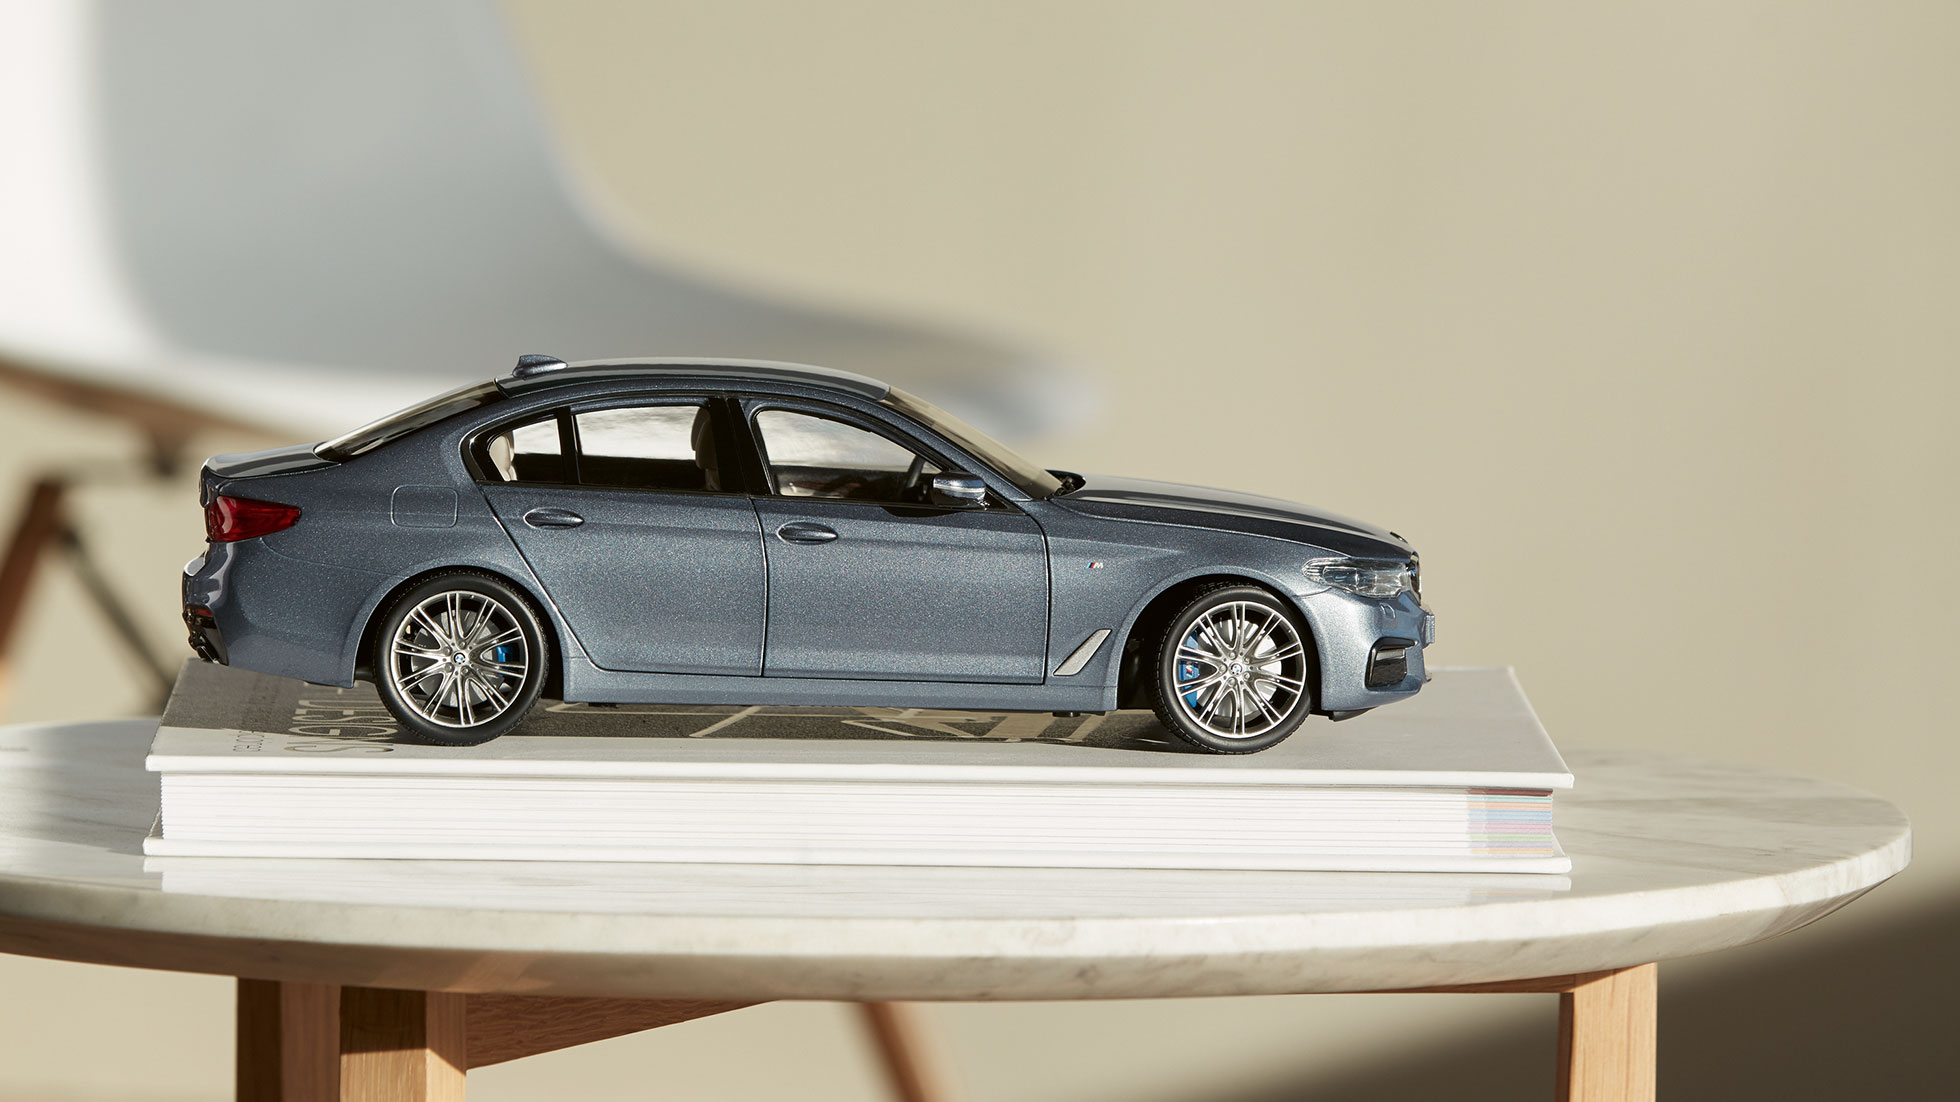 The picture shows a Miniature BMW 5 Series in the colour Sophisto Grey.